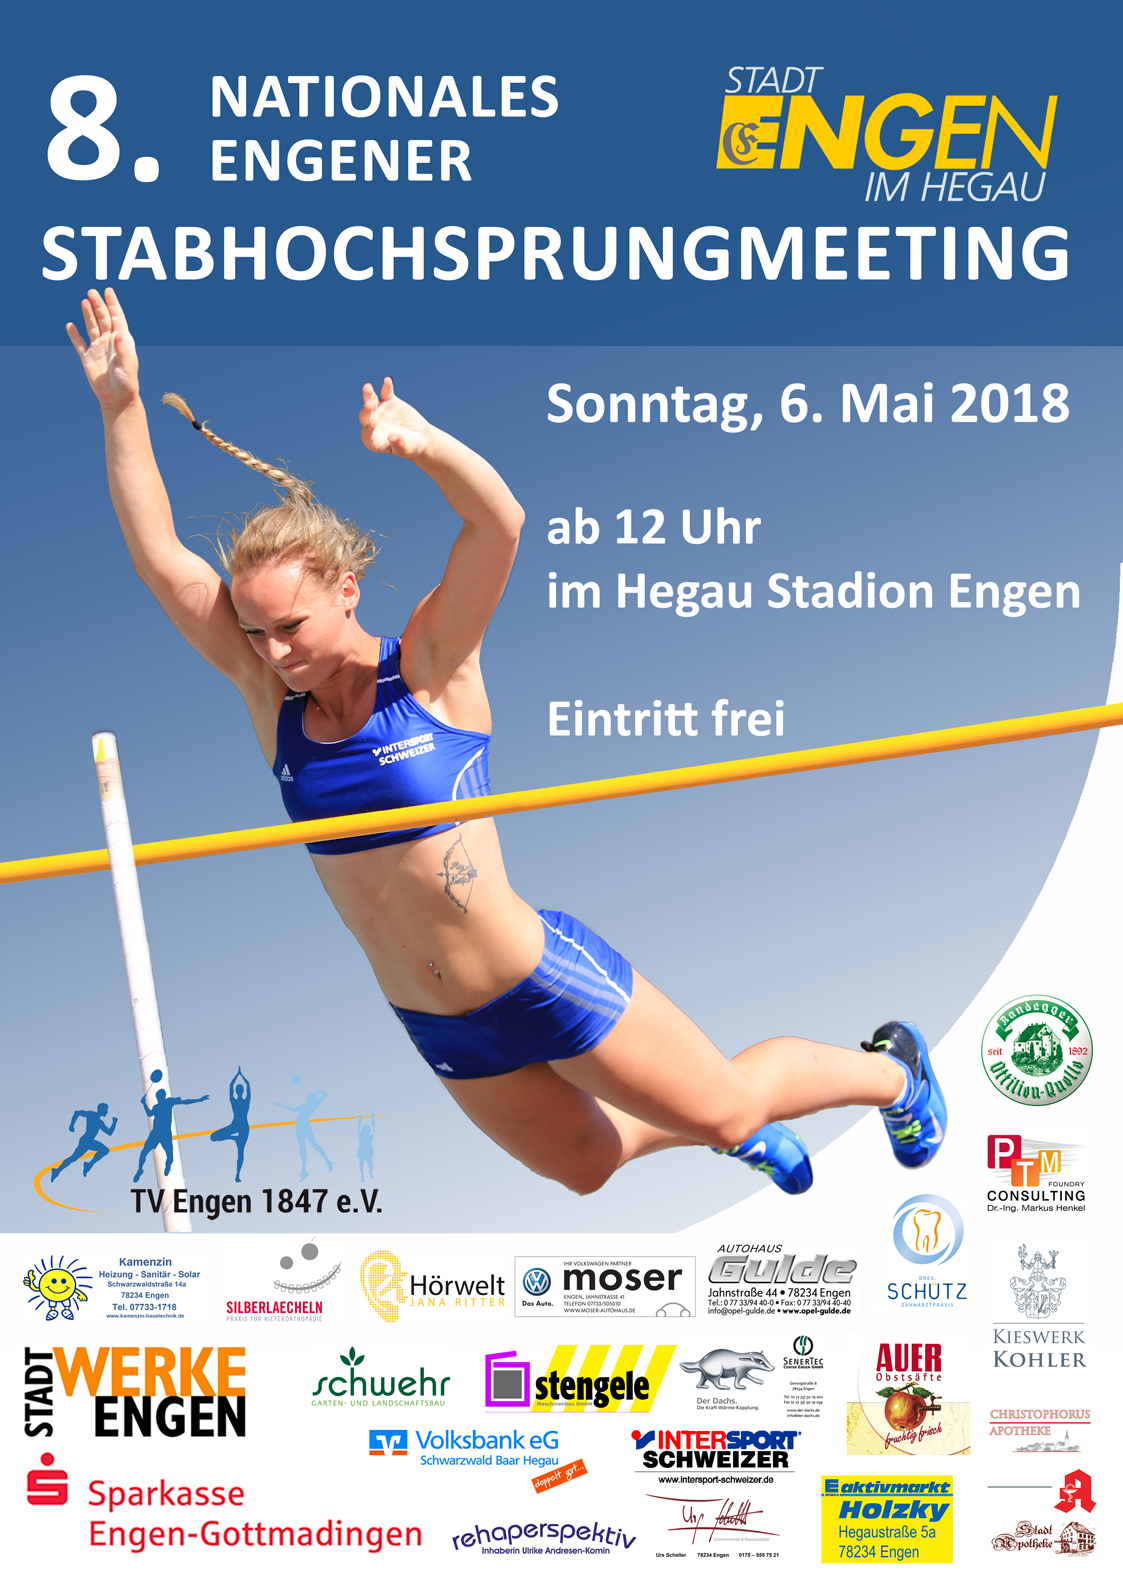 8. Nationales Stabhochsprungmeeting